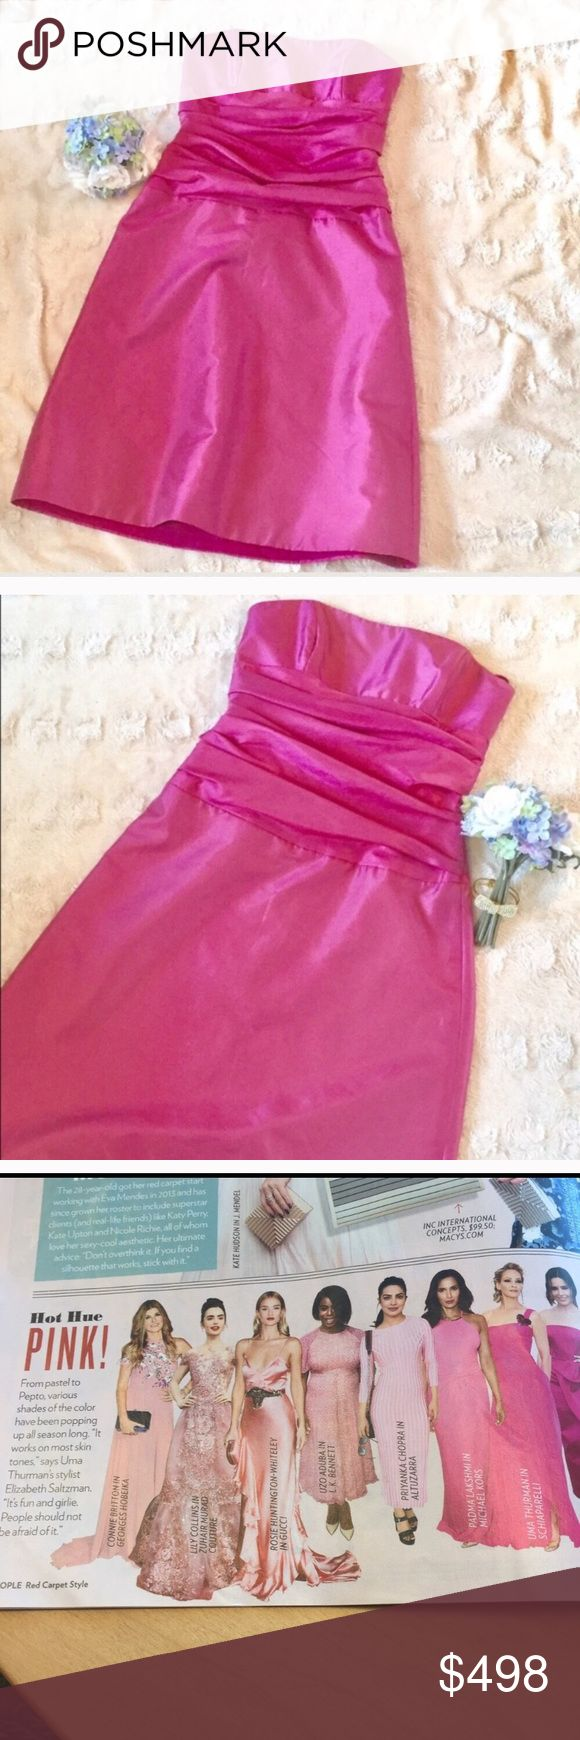 Amsale strapless dress hot pink SZ 6 Amsale Strapless hot pink  Dress. Size 6. Excellent used condition. One of the the most upscale bridal designers for a fraction of the original price! Perfect dress for prom,  bridesmaid or maid of honor. amsale Dresses Strapless